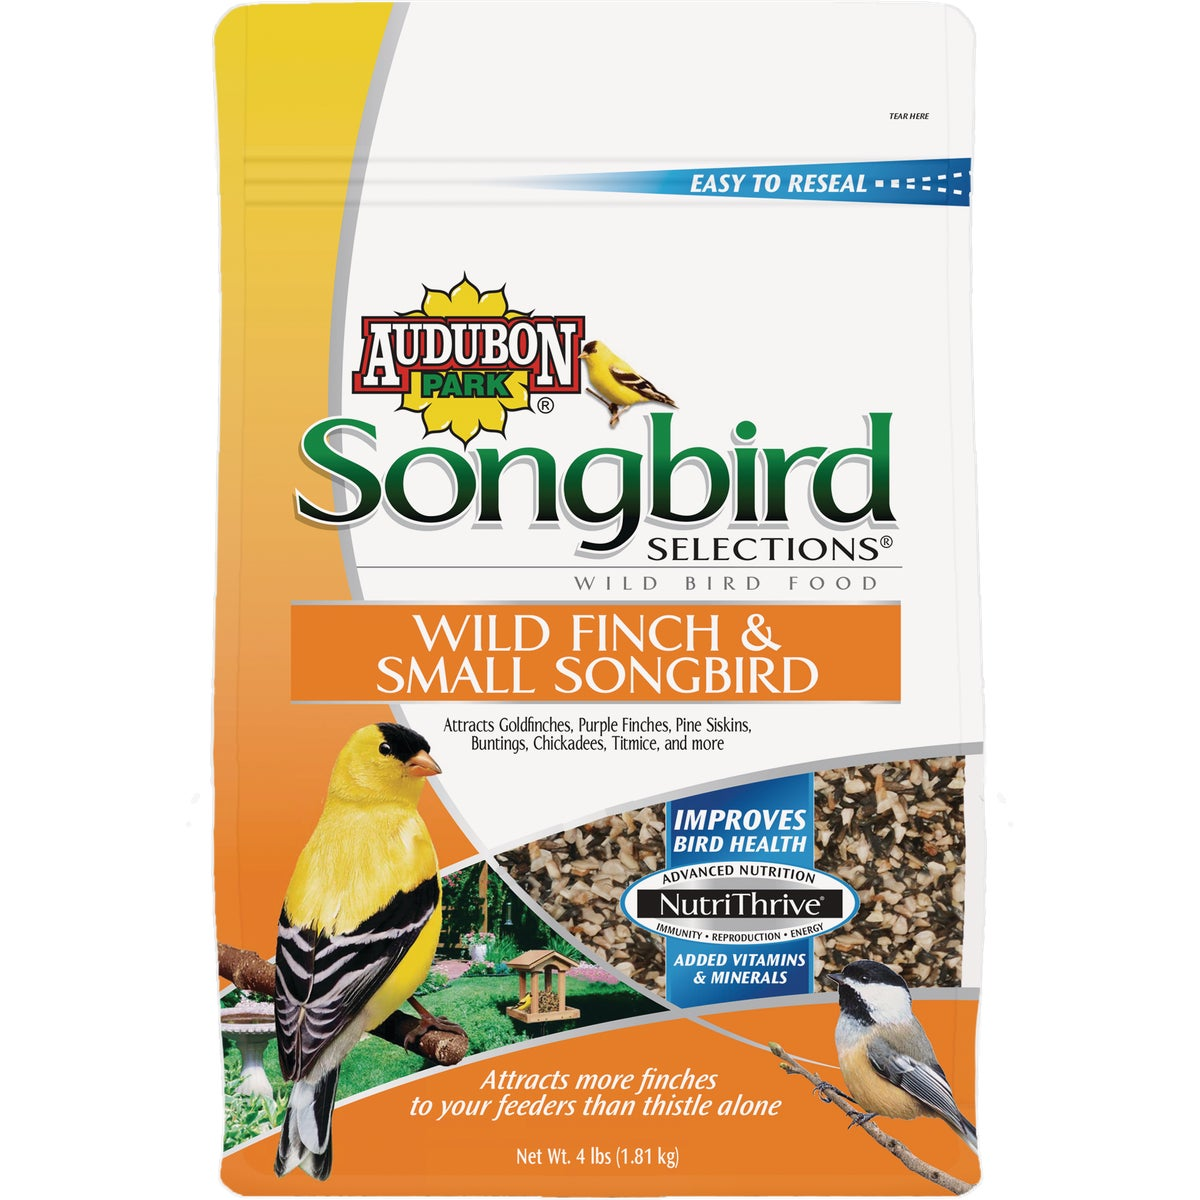 4LB FINCH/SONGBRD BLEND - 1025113 by Scotts Songbird